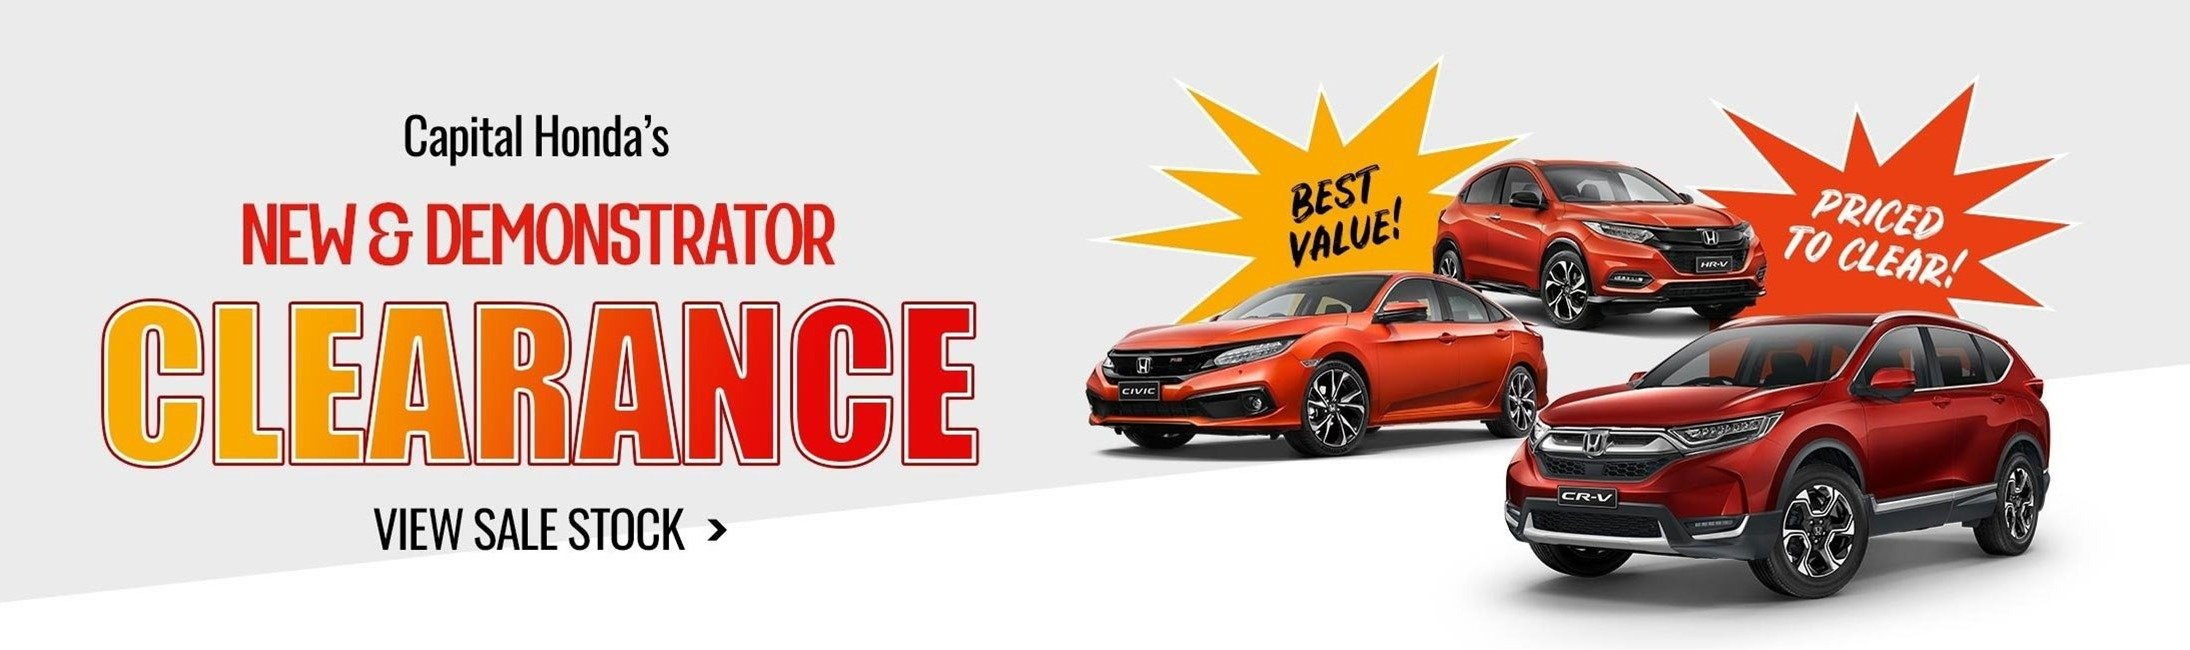 Capital Honda Clearance Sale